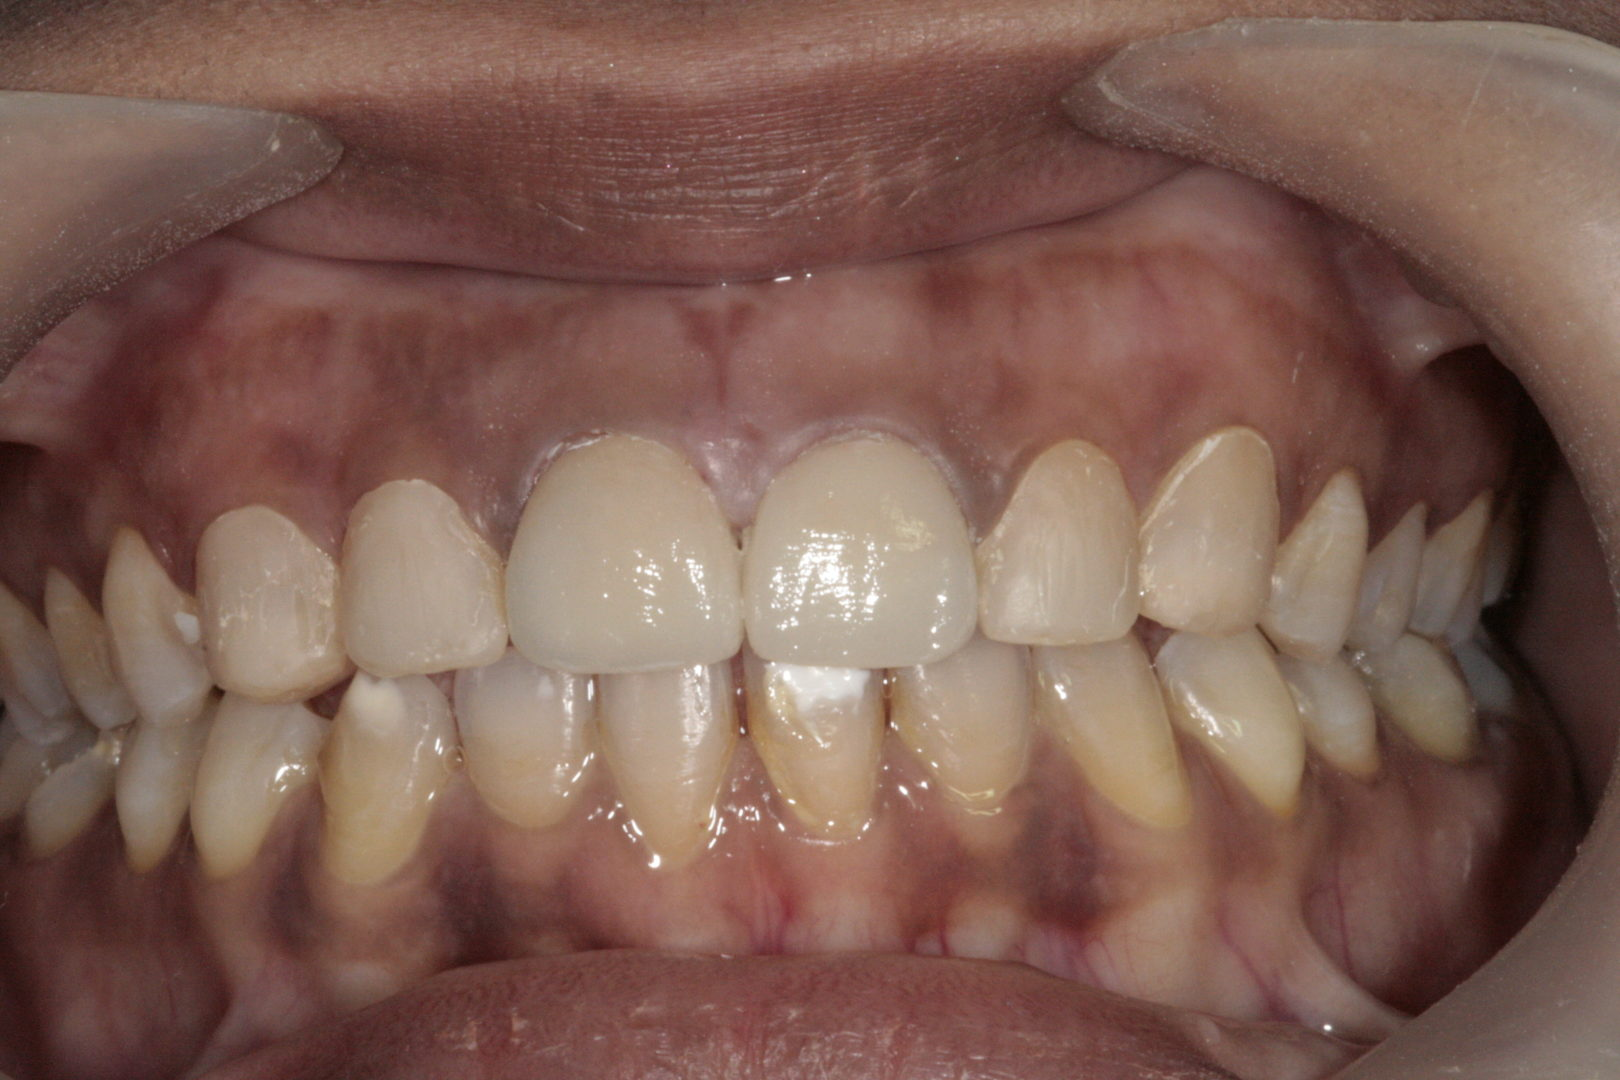 Tooth Replacement - Crowns - Dr-Smilez Dental Center - Chennai